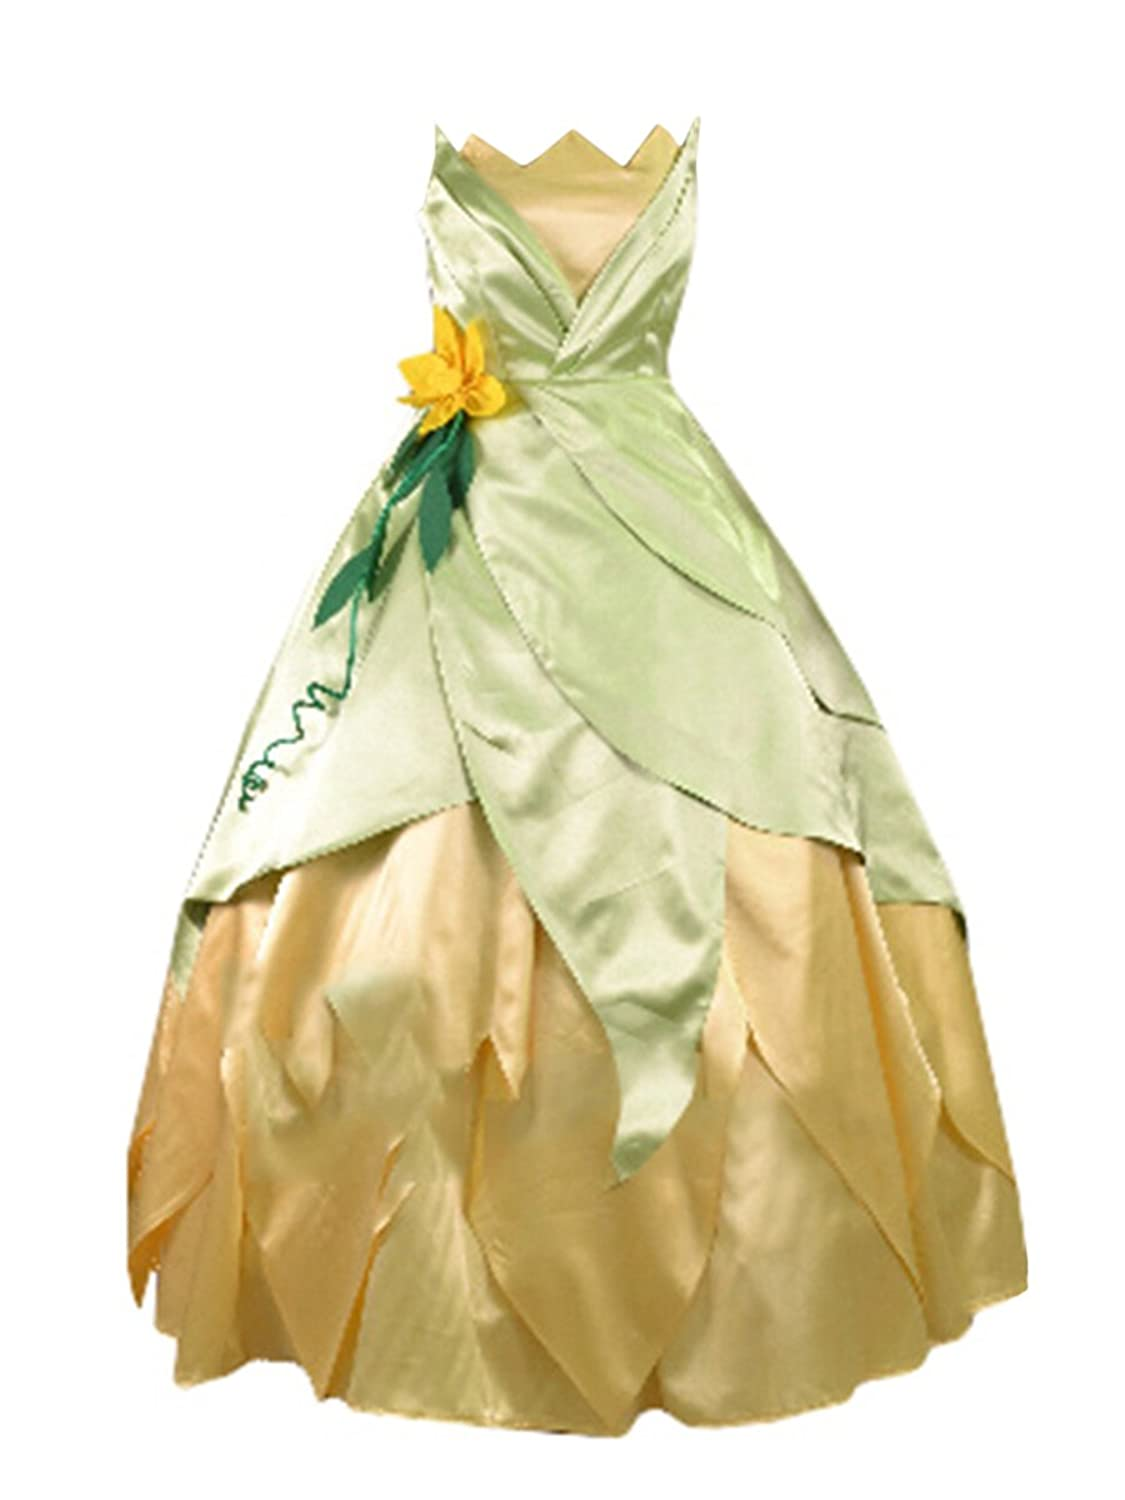 Amazon.com Horcute gorgeous Princess Cosplay Dress Costume For Adult Customizable Clothing  sc 1 st  Amazon.com & Amazon.com: Horcute gorgeous Princess Cosplay Dress Costume For ...